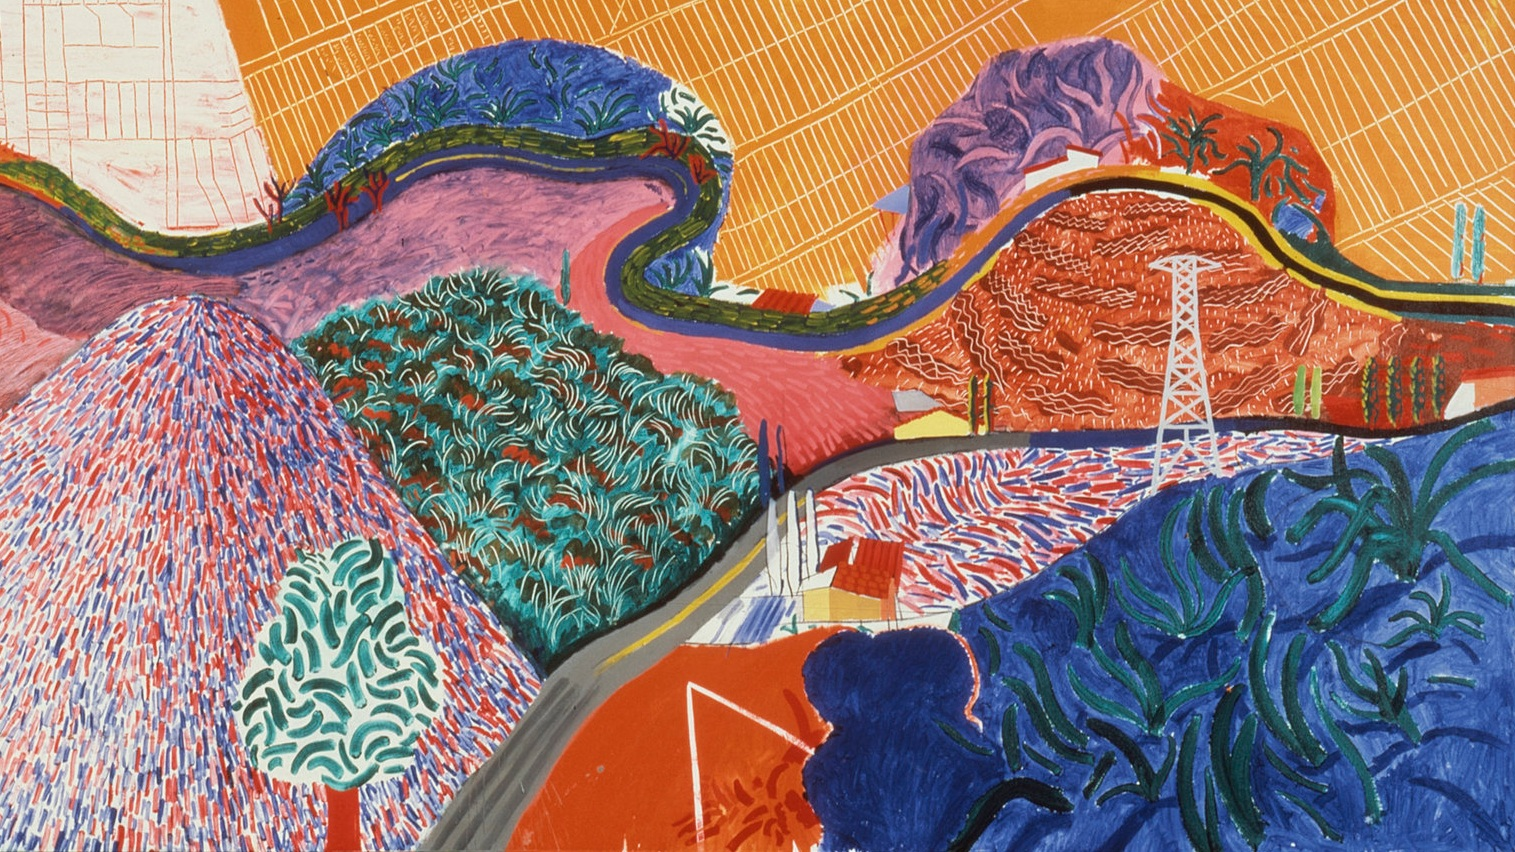 David Hockney,  Mulholland Drive: The Road to the Studio , England, 1980, Acrylic on canvas. Los Angeles County Museum of Art.